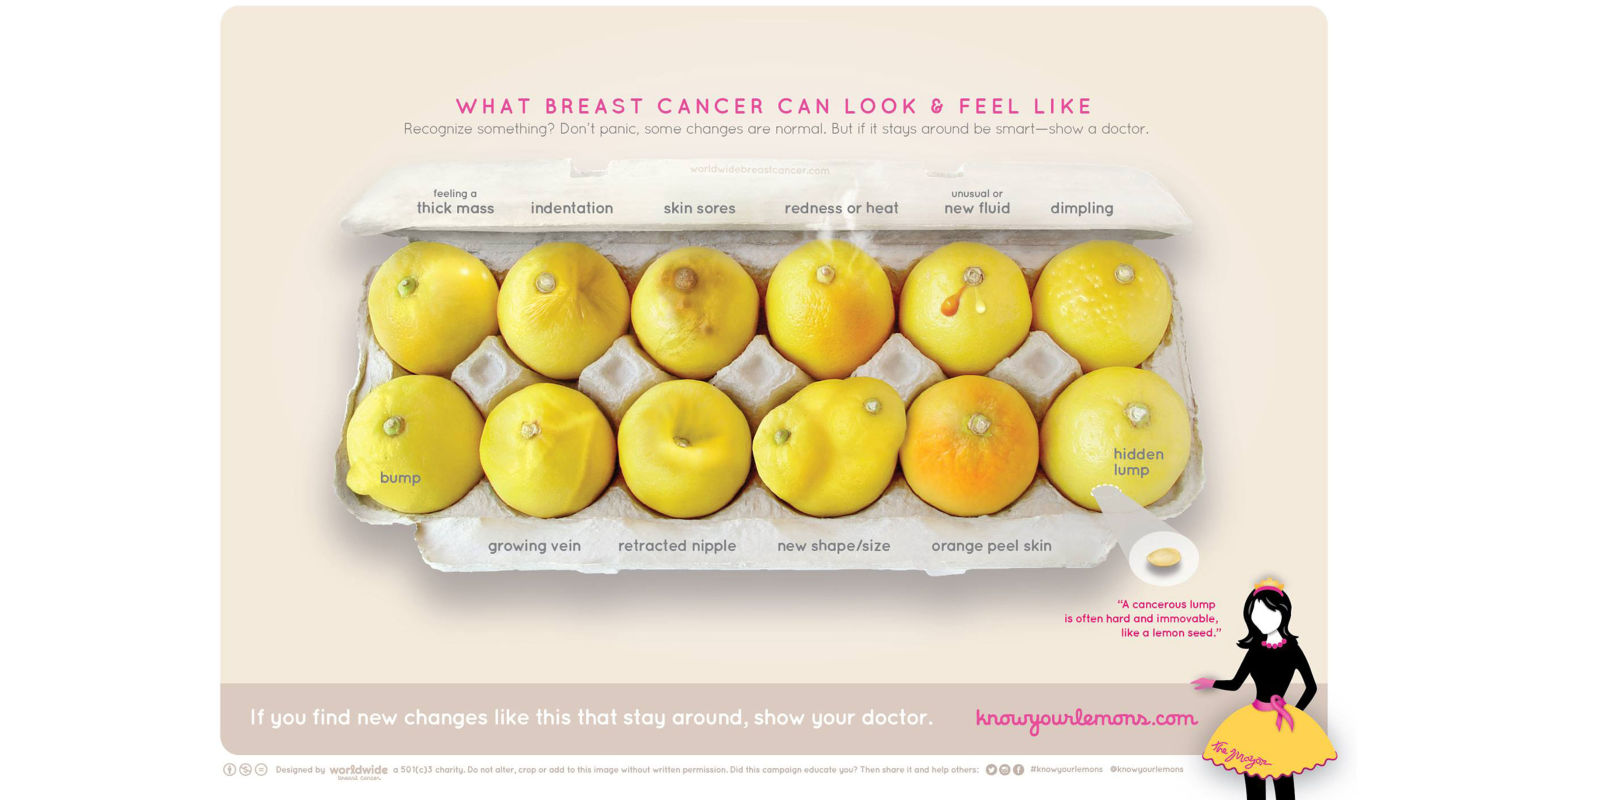 How a viral image of lemons is helping breast cancer awareness